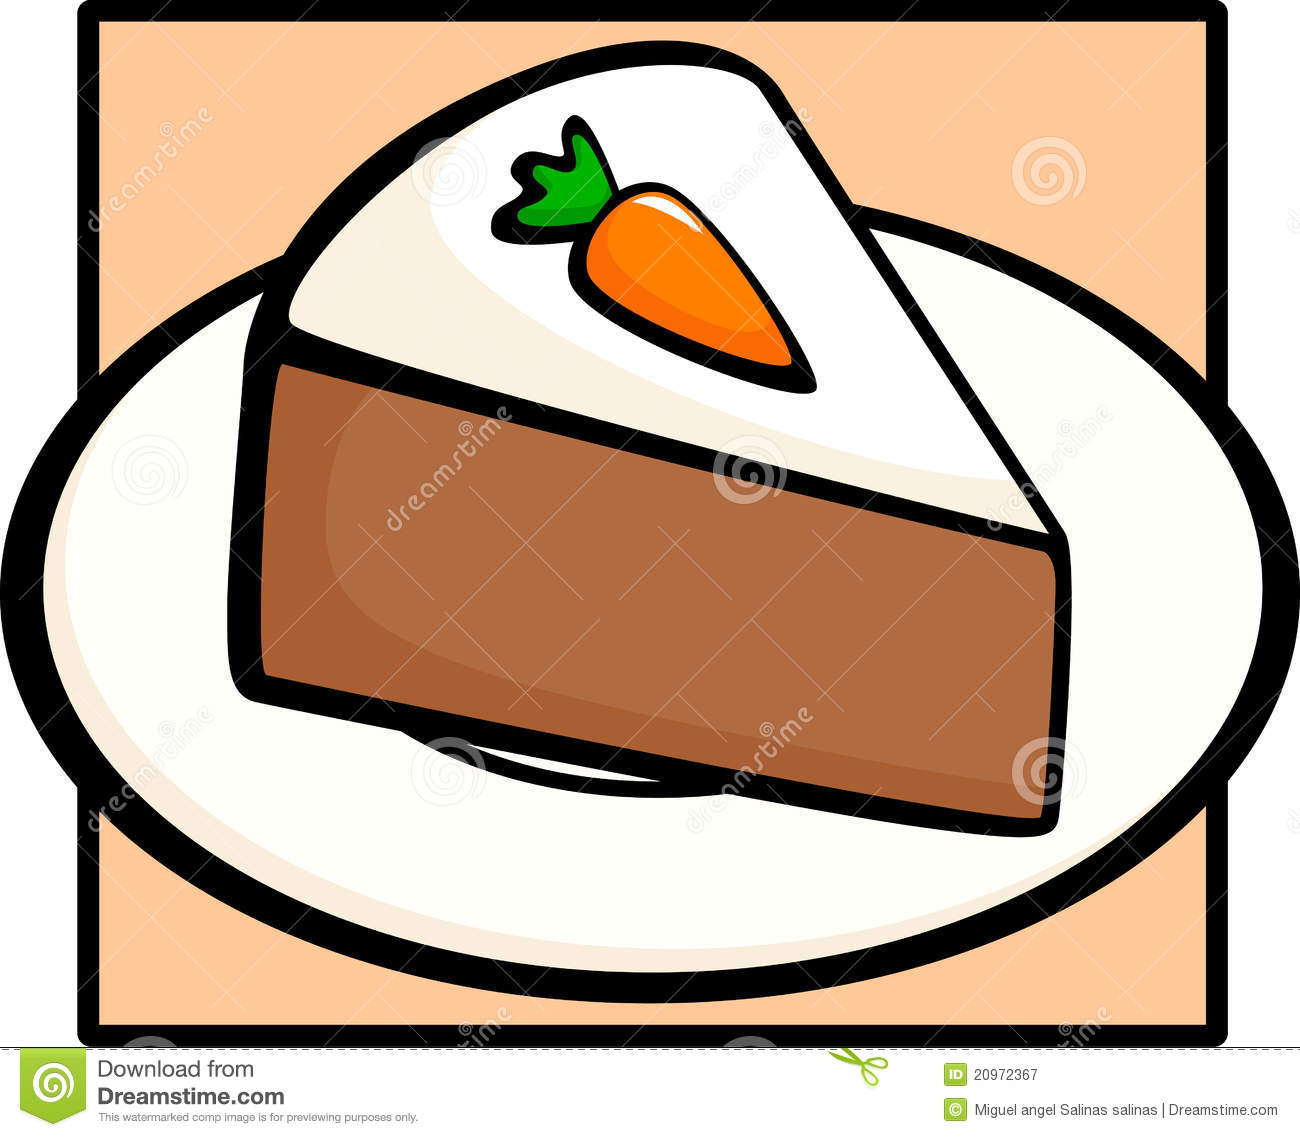 Cenoura desenho clipart picture transparent Carrot cake clipart 6 » Clipart Station picture transparent